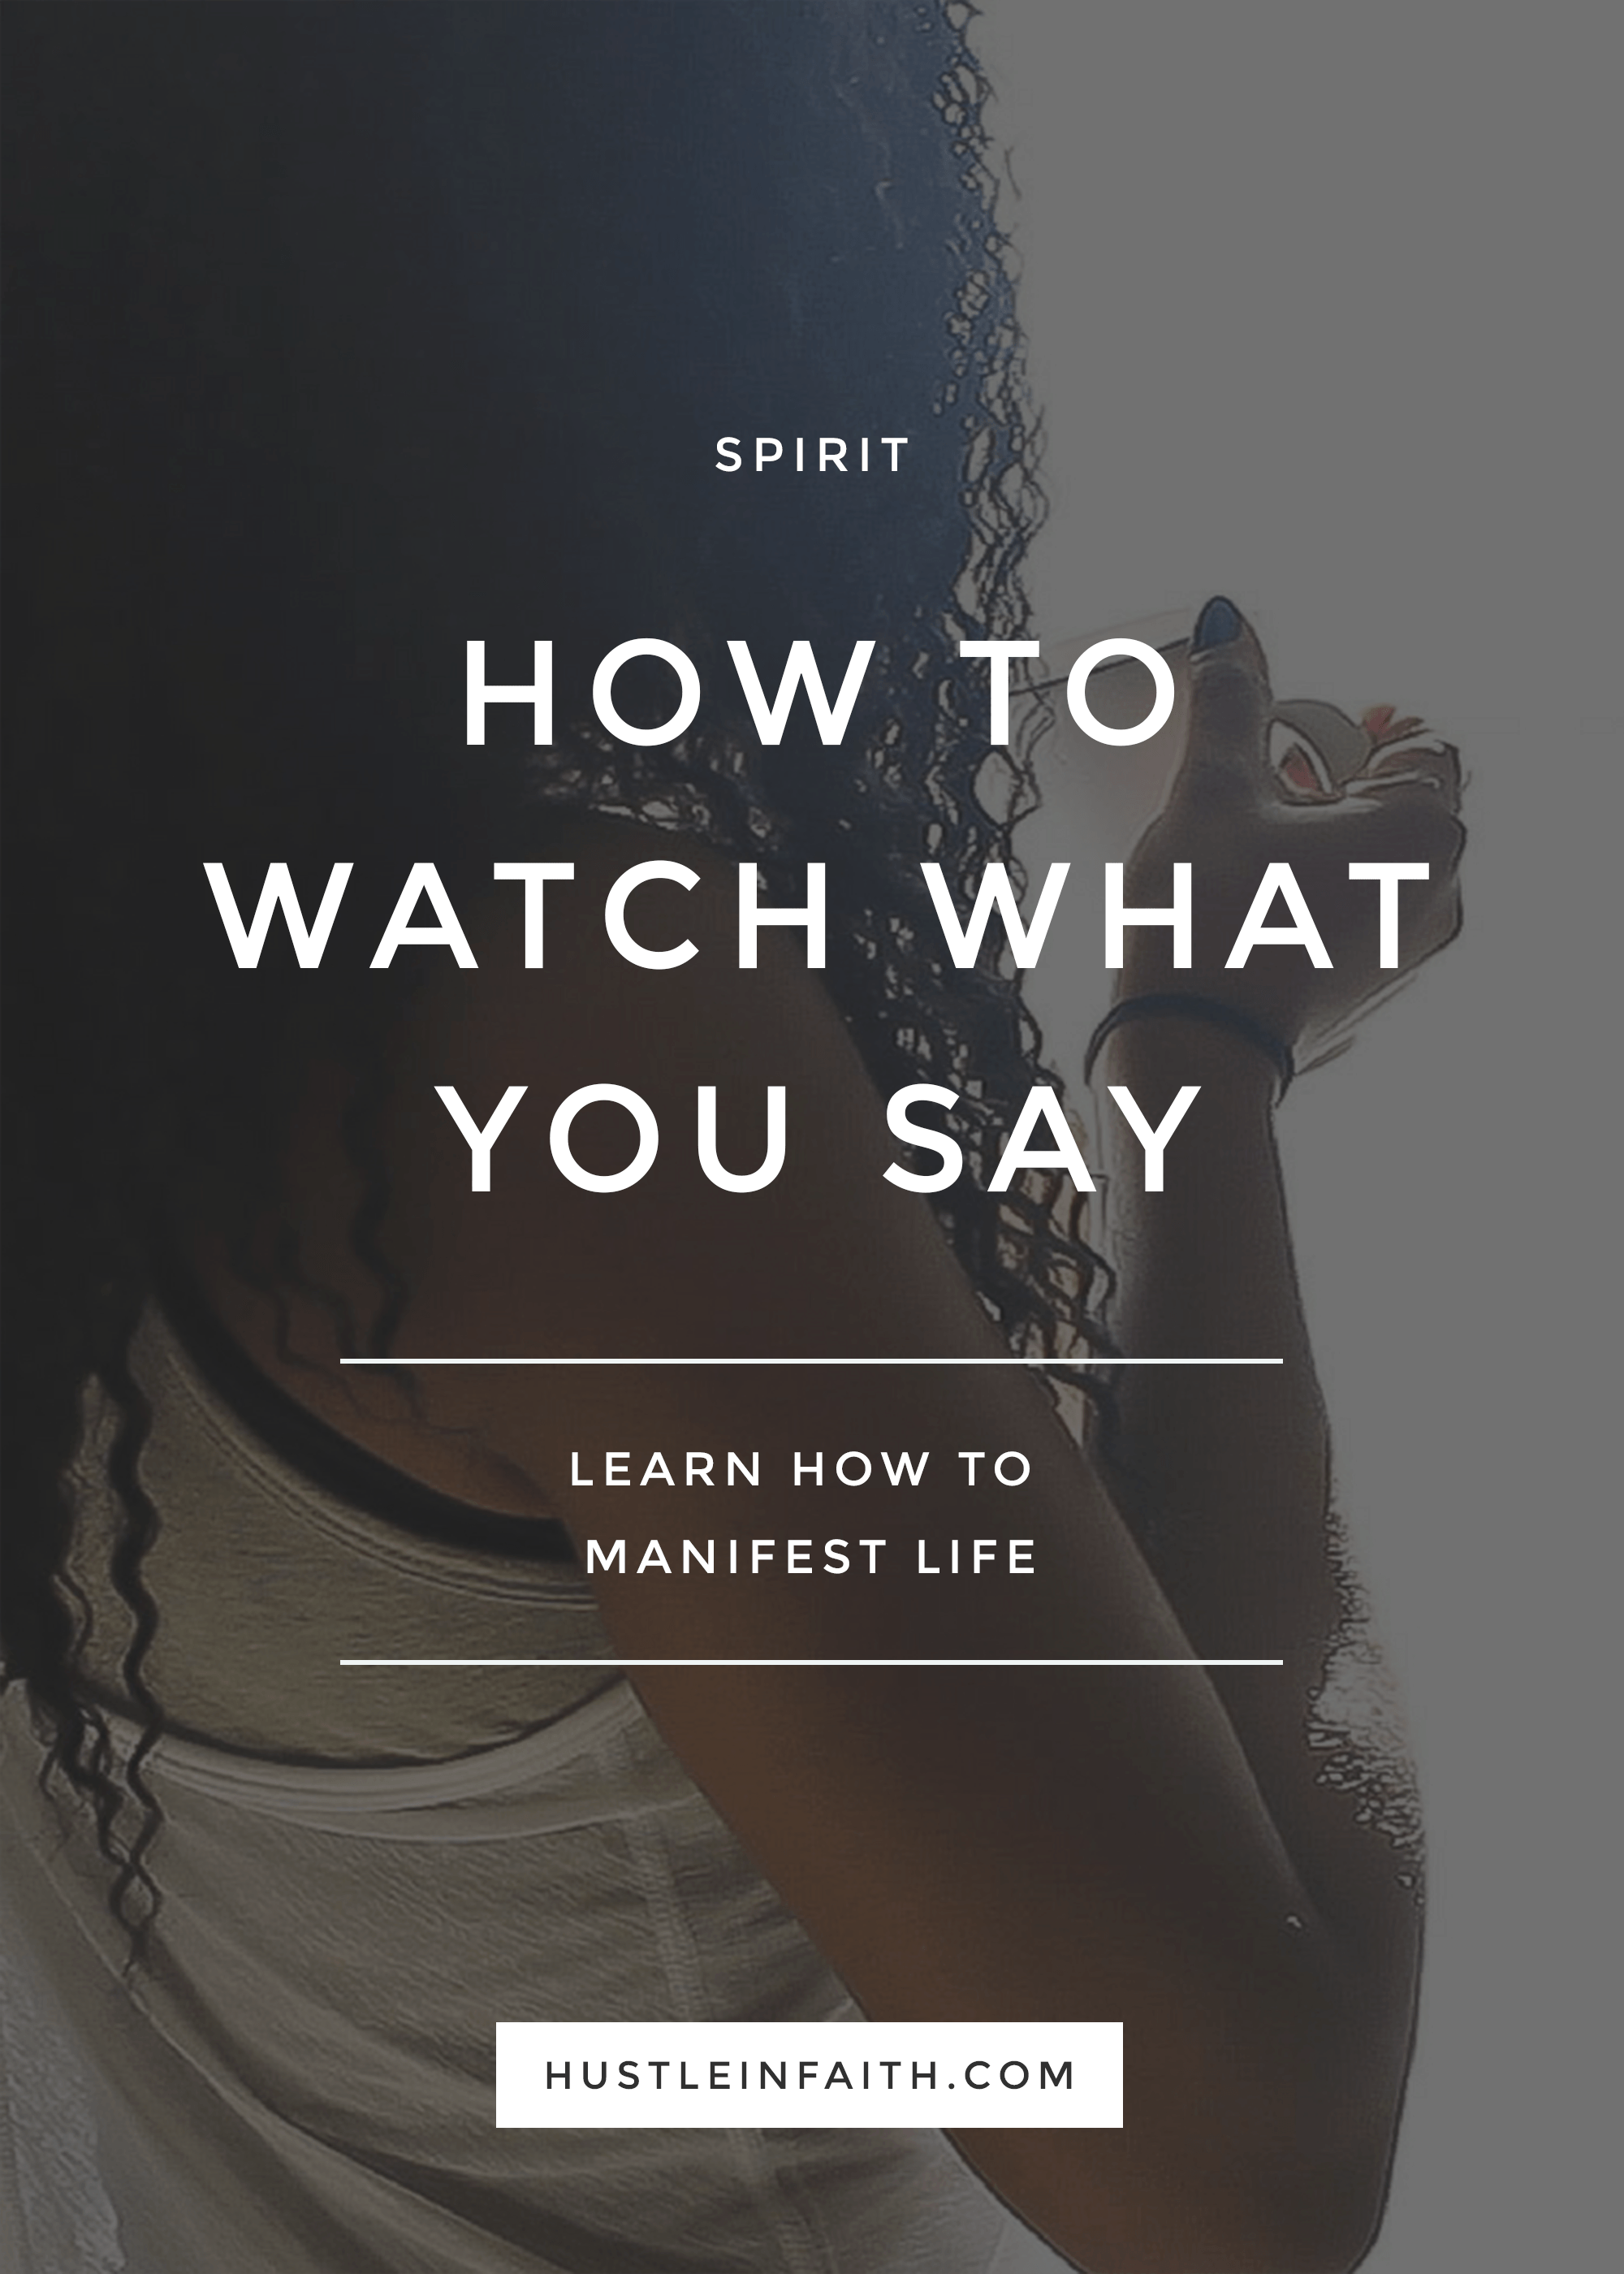 HOW TO WATCH WHAT YOU SAY HUSTLE IN FAITH